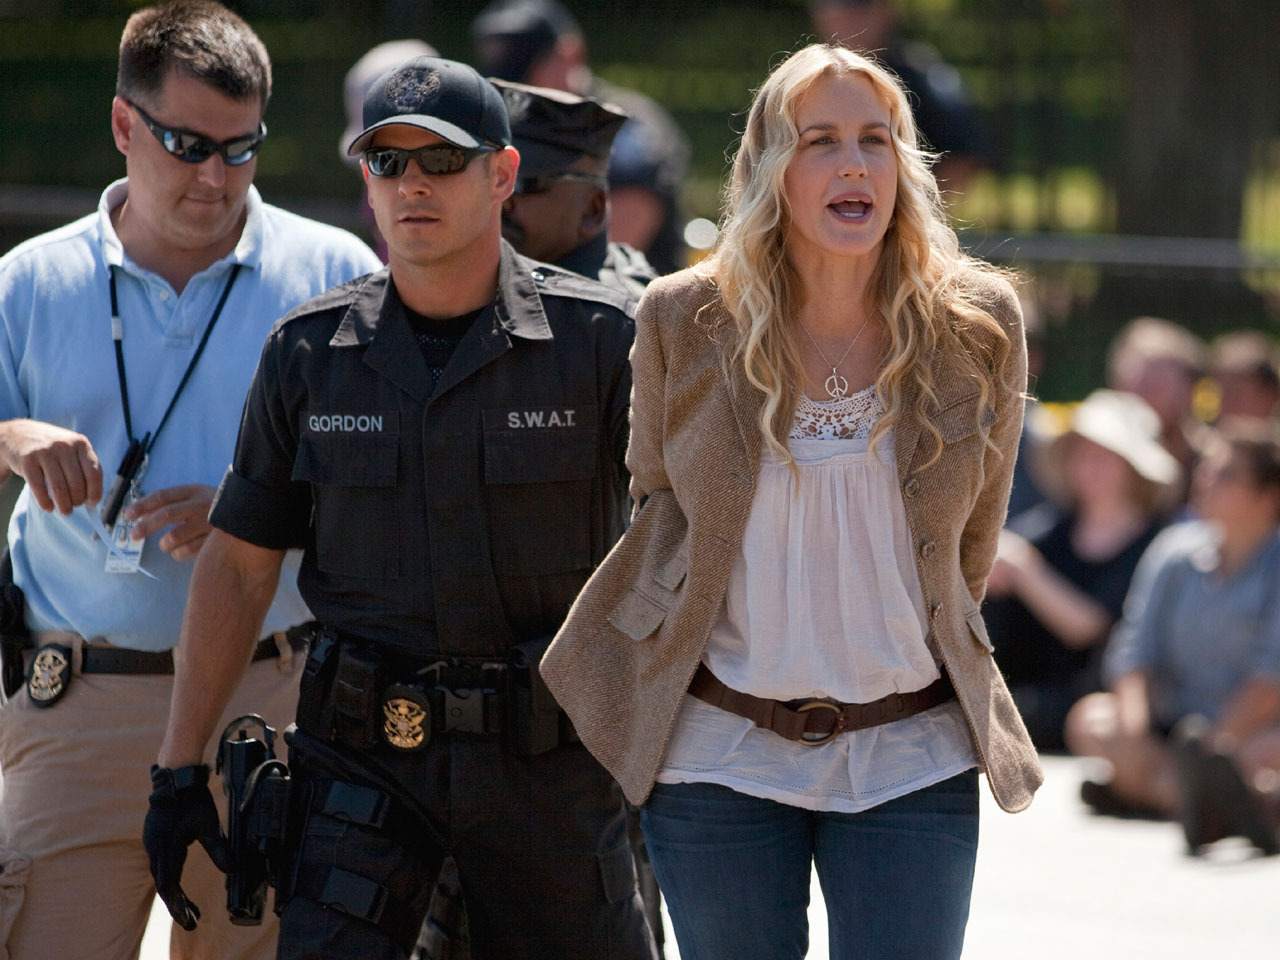 Daryl Hannah arrested in front of White House Daryl Hannah arrested in front of White House new foto